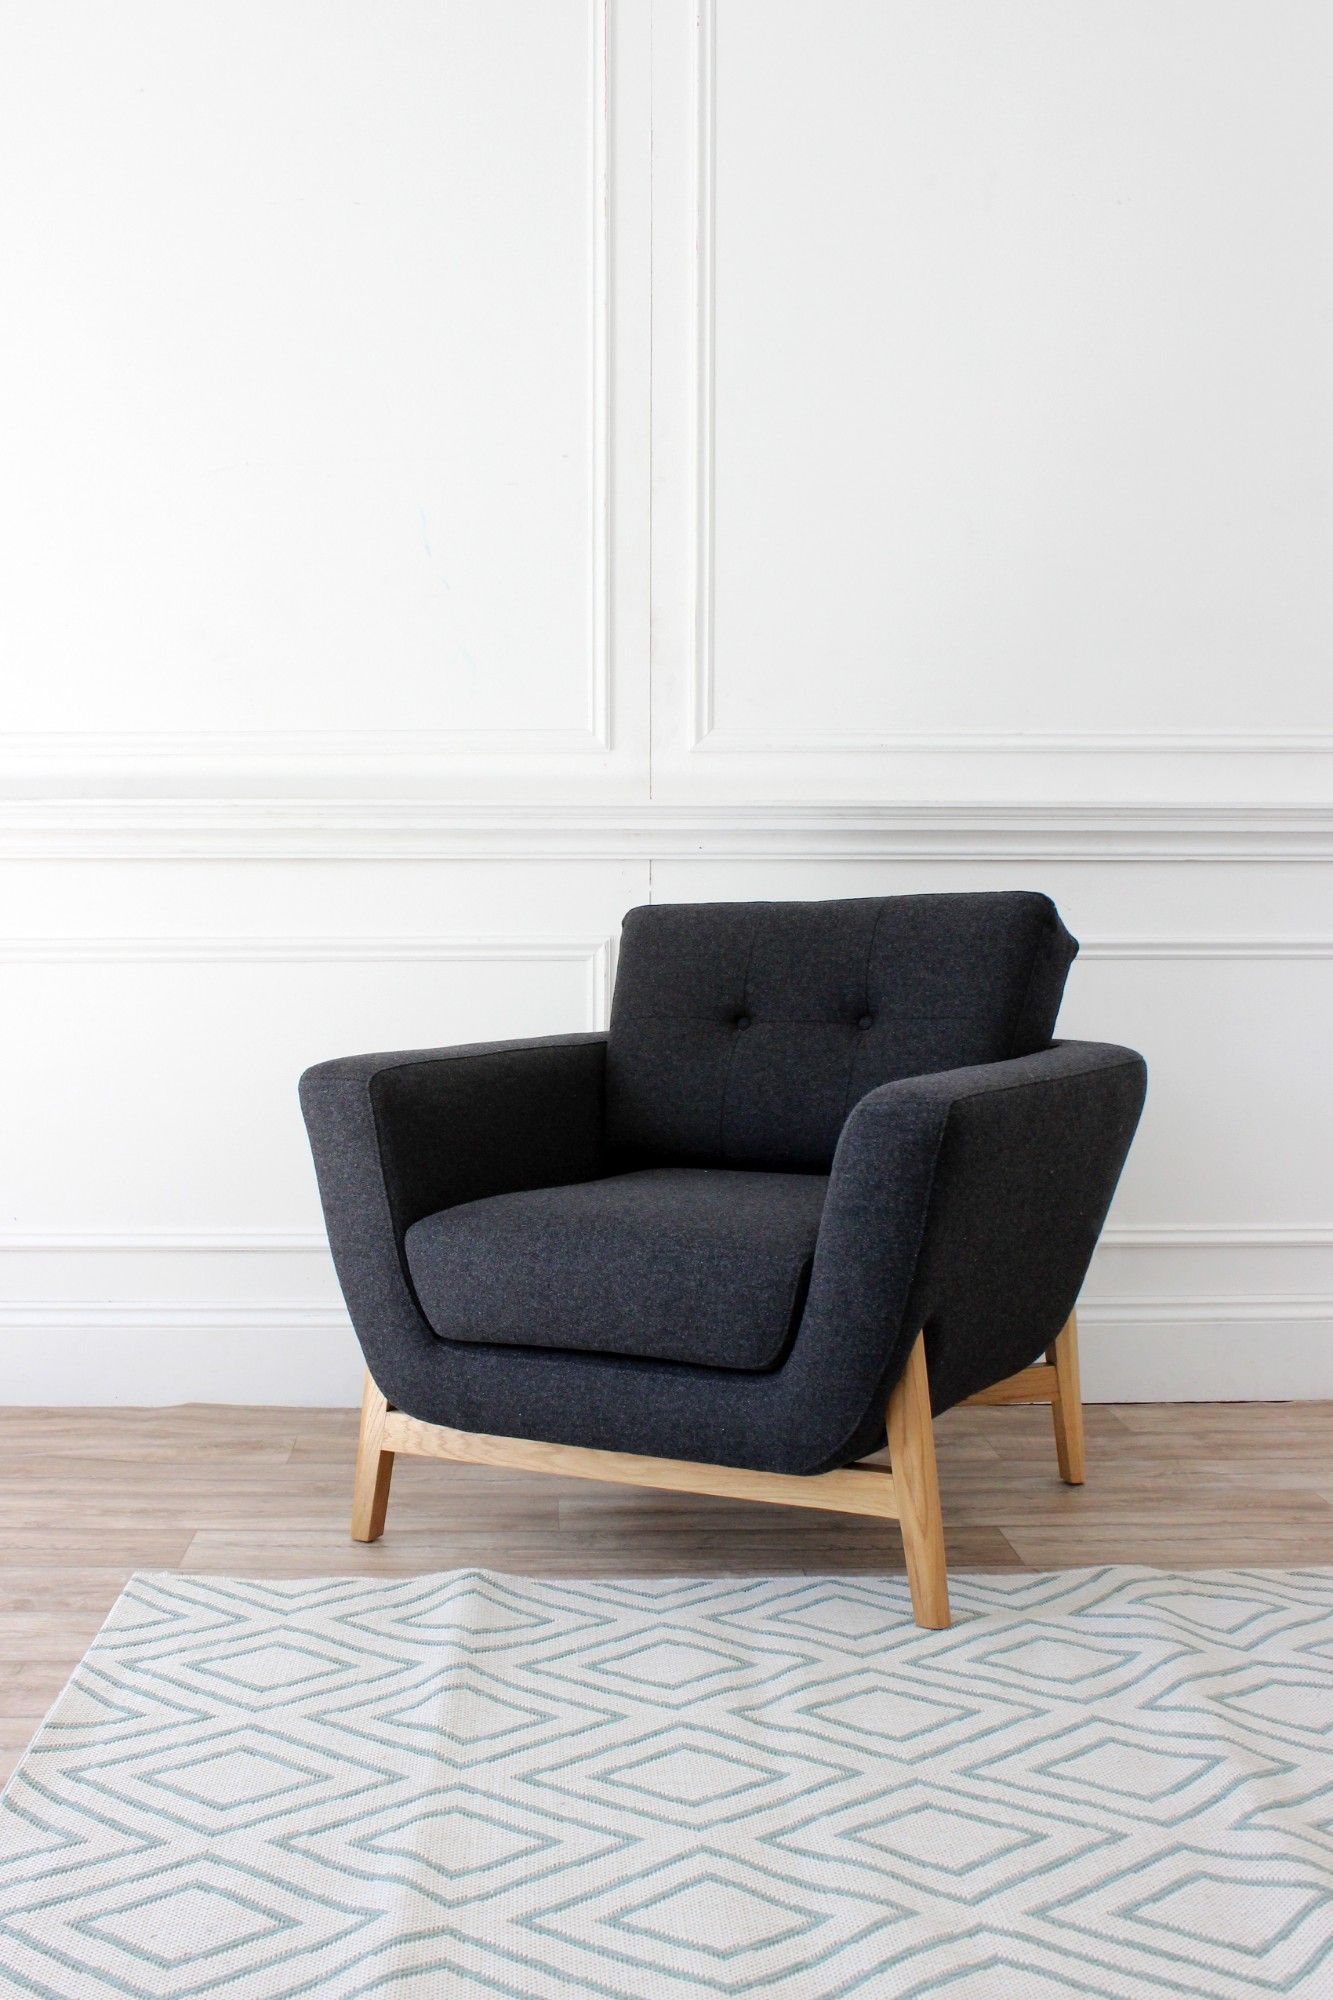 Swell Sofa Pronto Brings Thoughtful Mid Century Design Together Machost Co Dining Chair Design Ideas Machostcouk